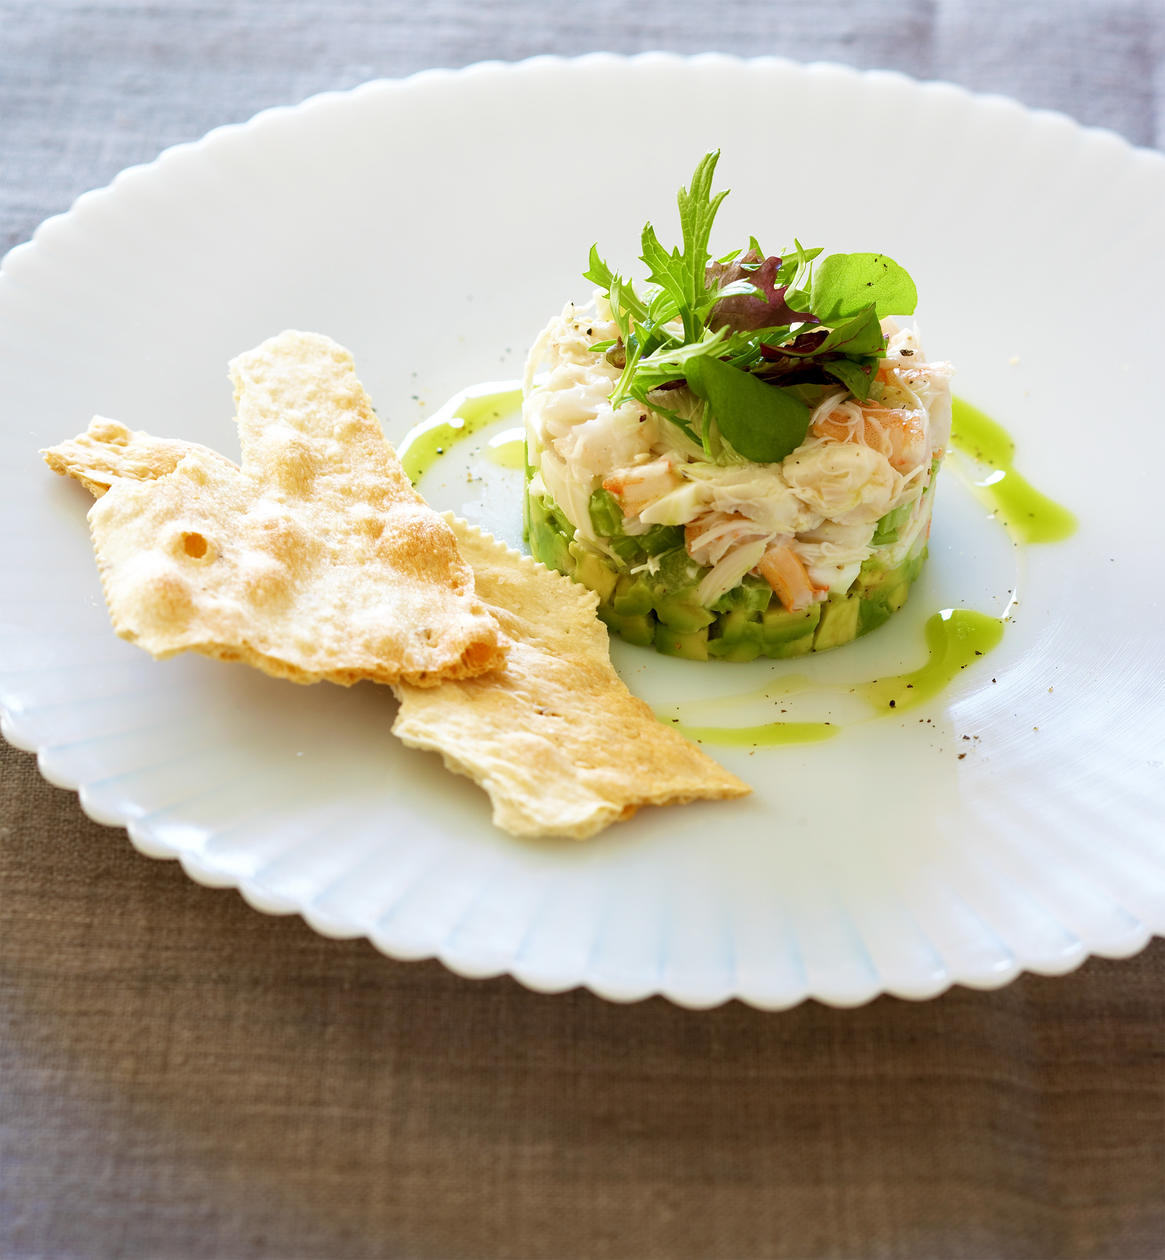 green oil on plate of lumb crab and shrimp